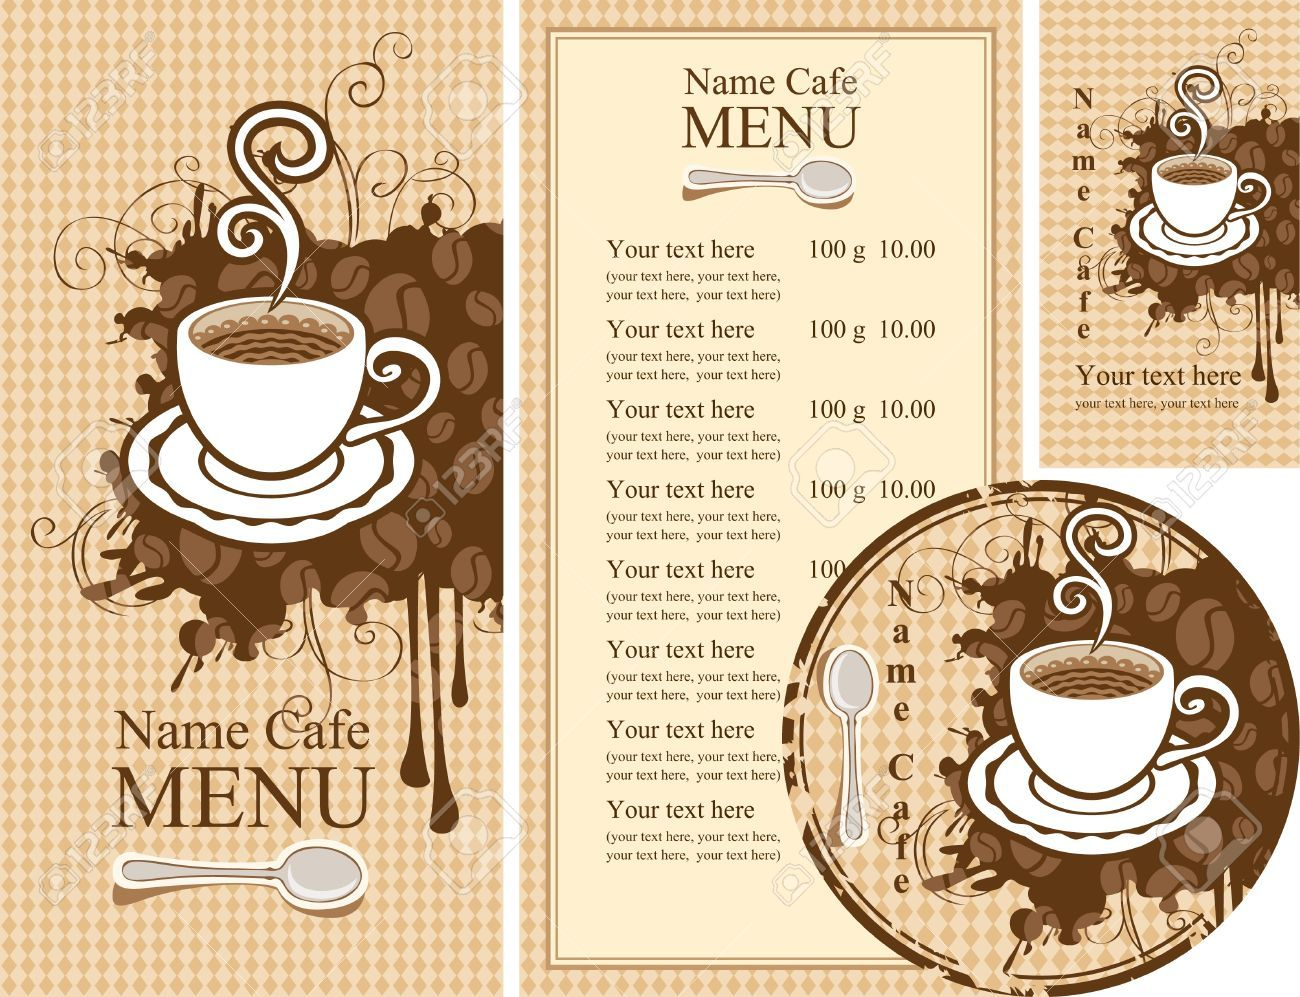 Top Deals Restaurant Menu at Factory Price. Feel free to call at: 856-939-5599 or Visit http://www.njprintandweb.com/printing/restaurant-menu-printing/